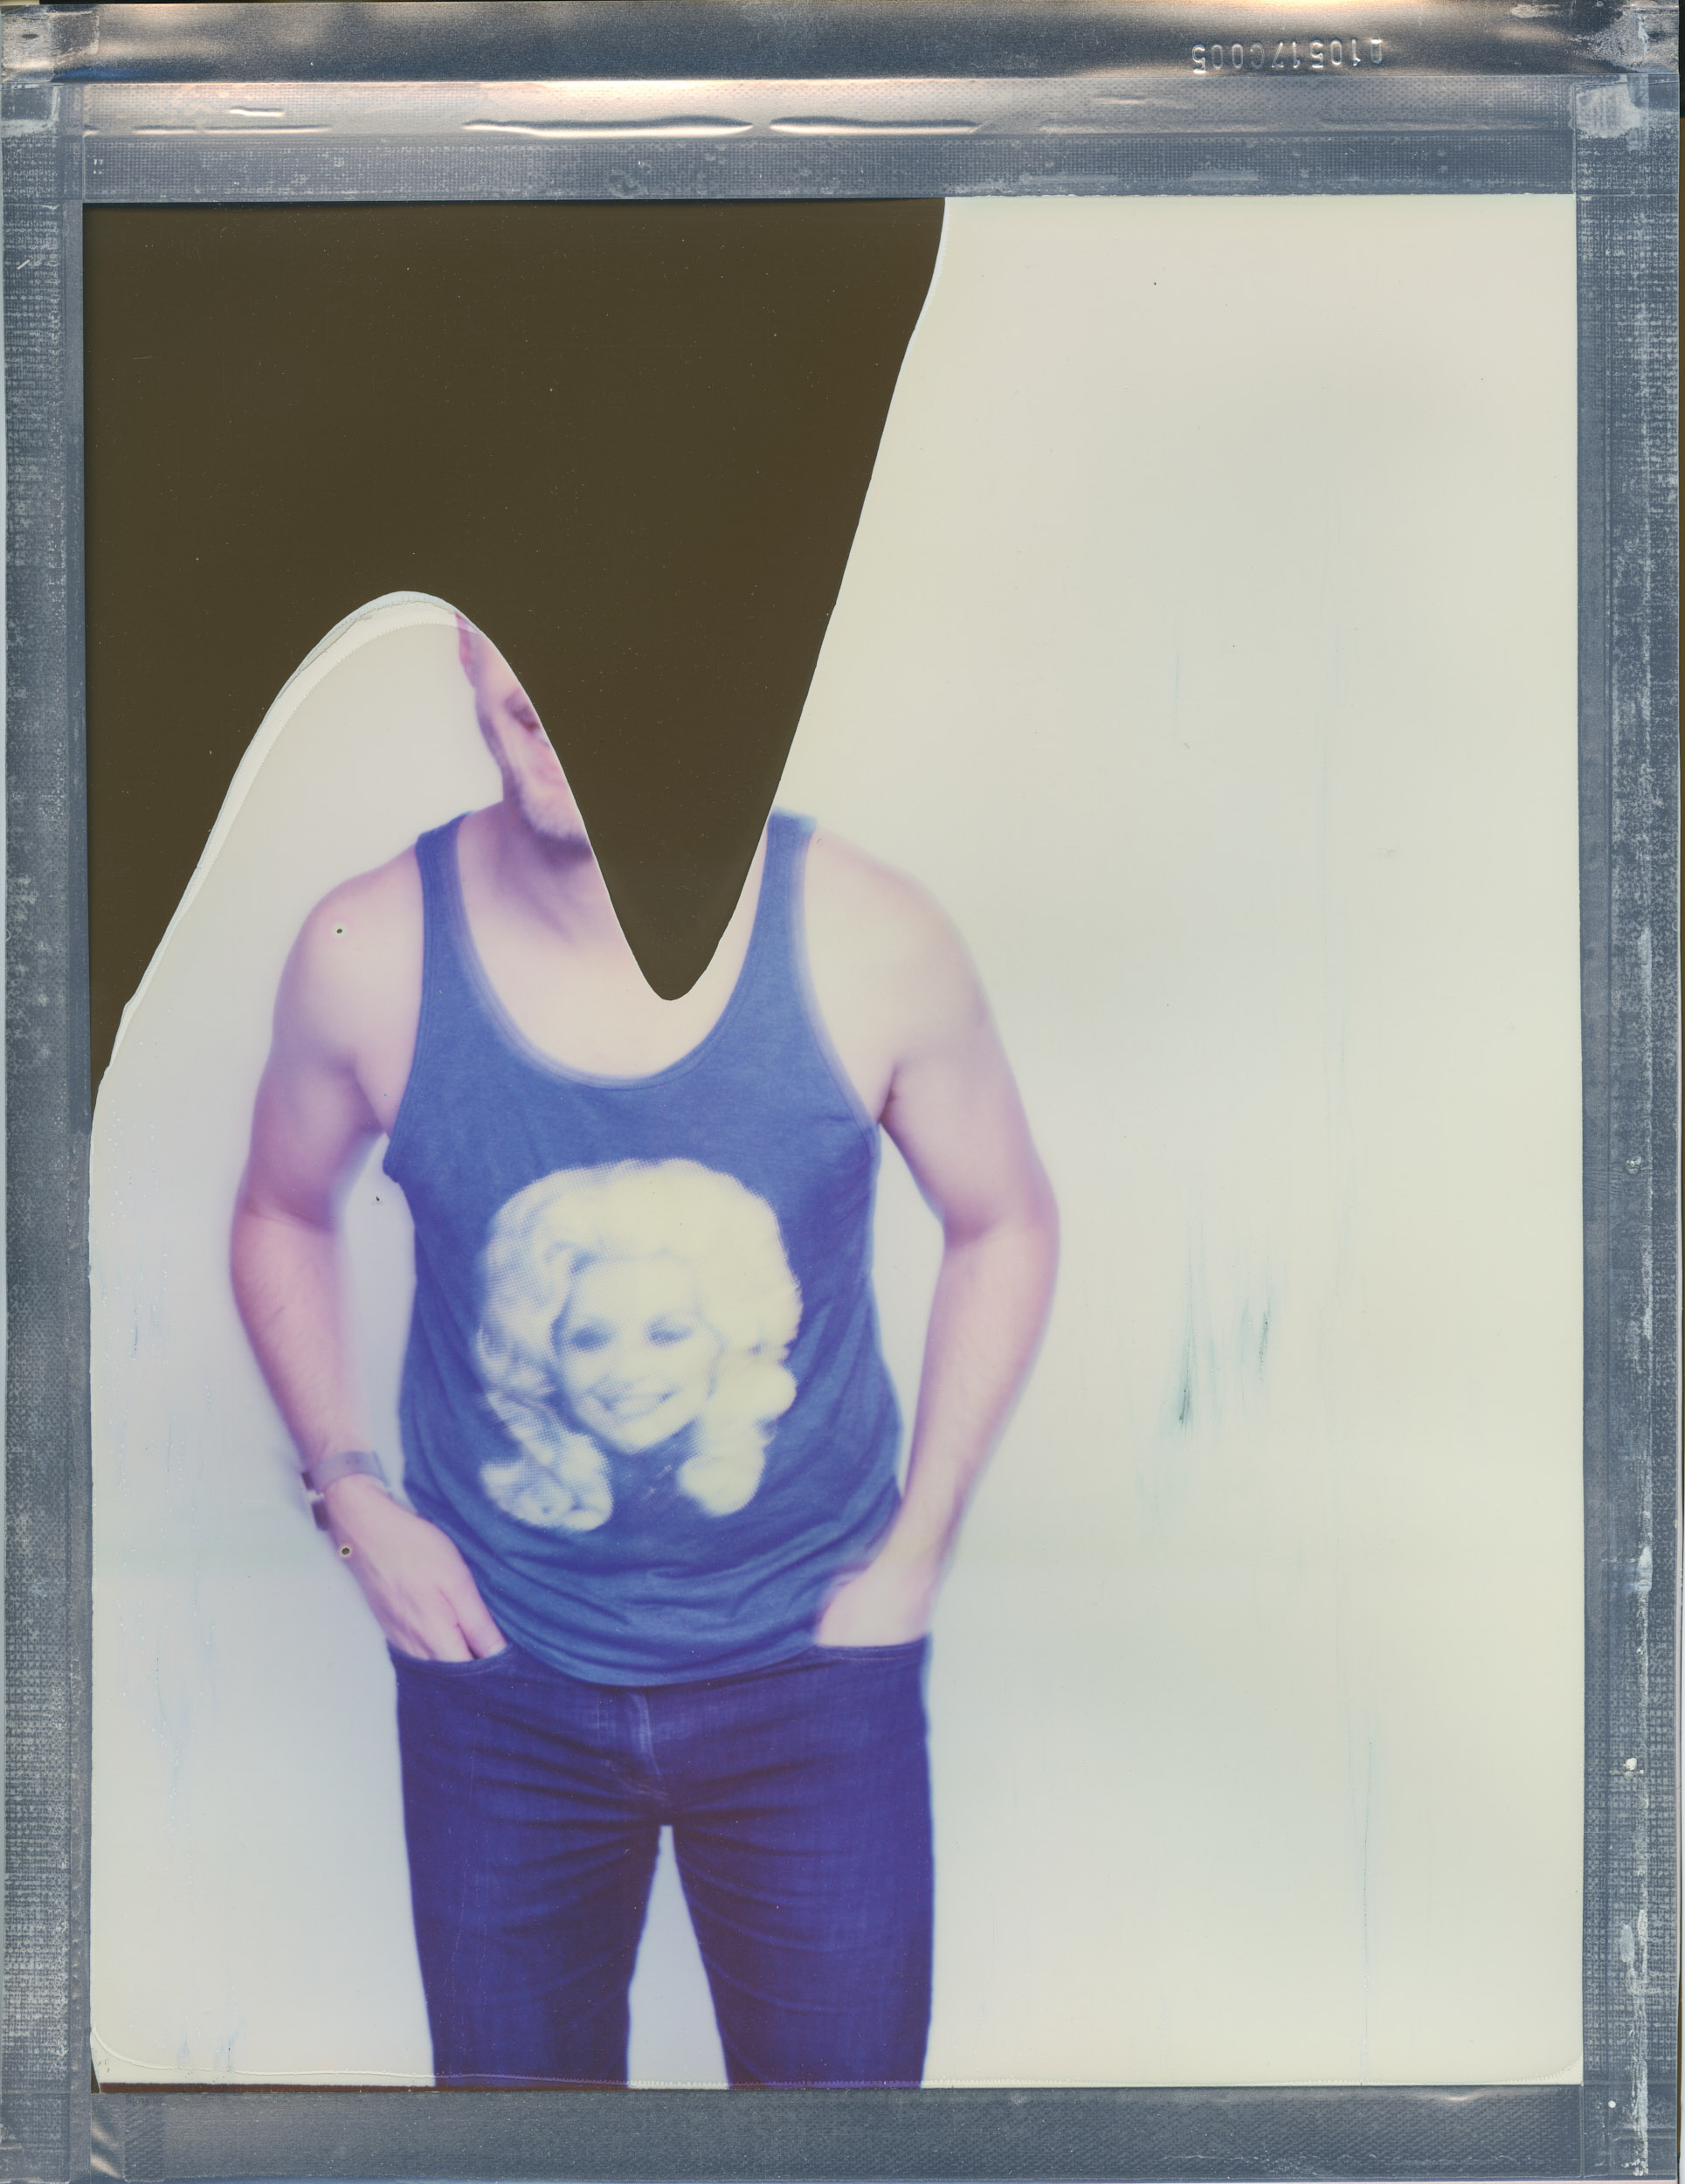 David_Agnello_polaroid_film_photography_415